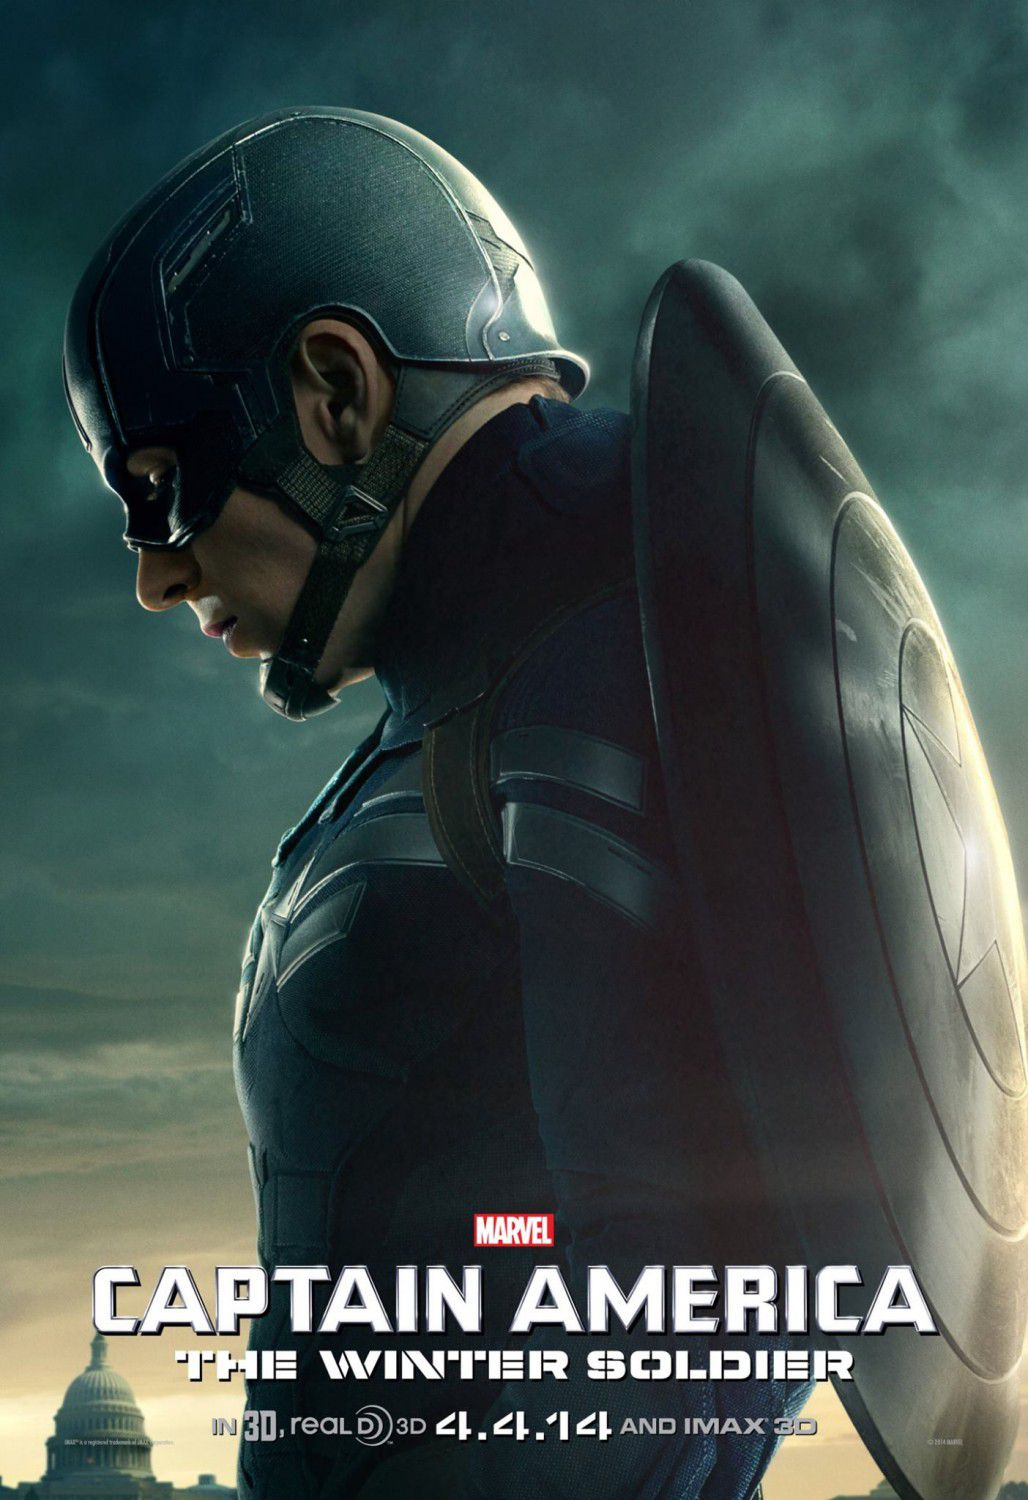 Film - Captain America 2 - the Winter Soldier - Capitan America -  Chris Evans